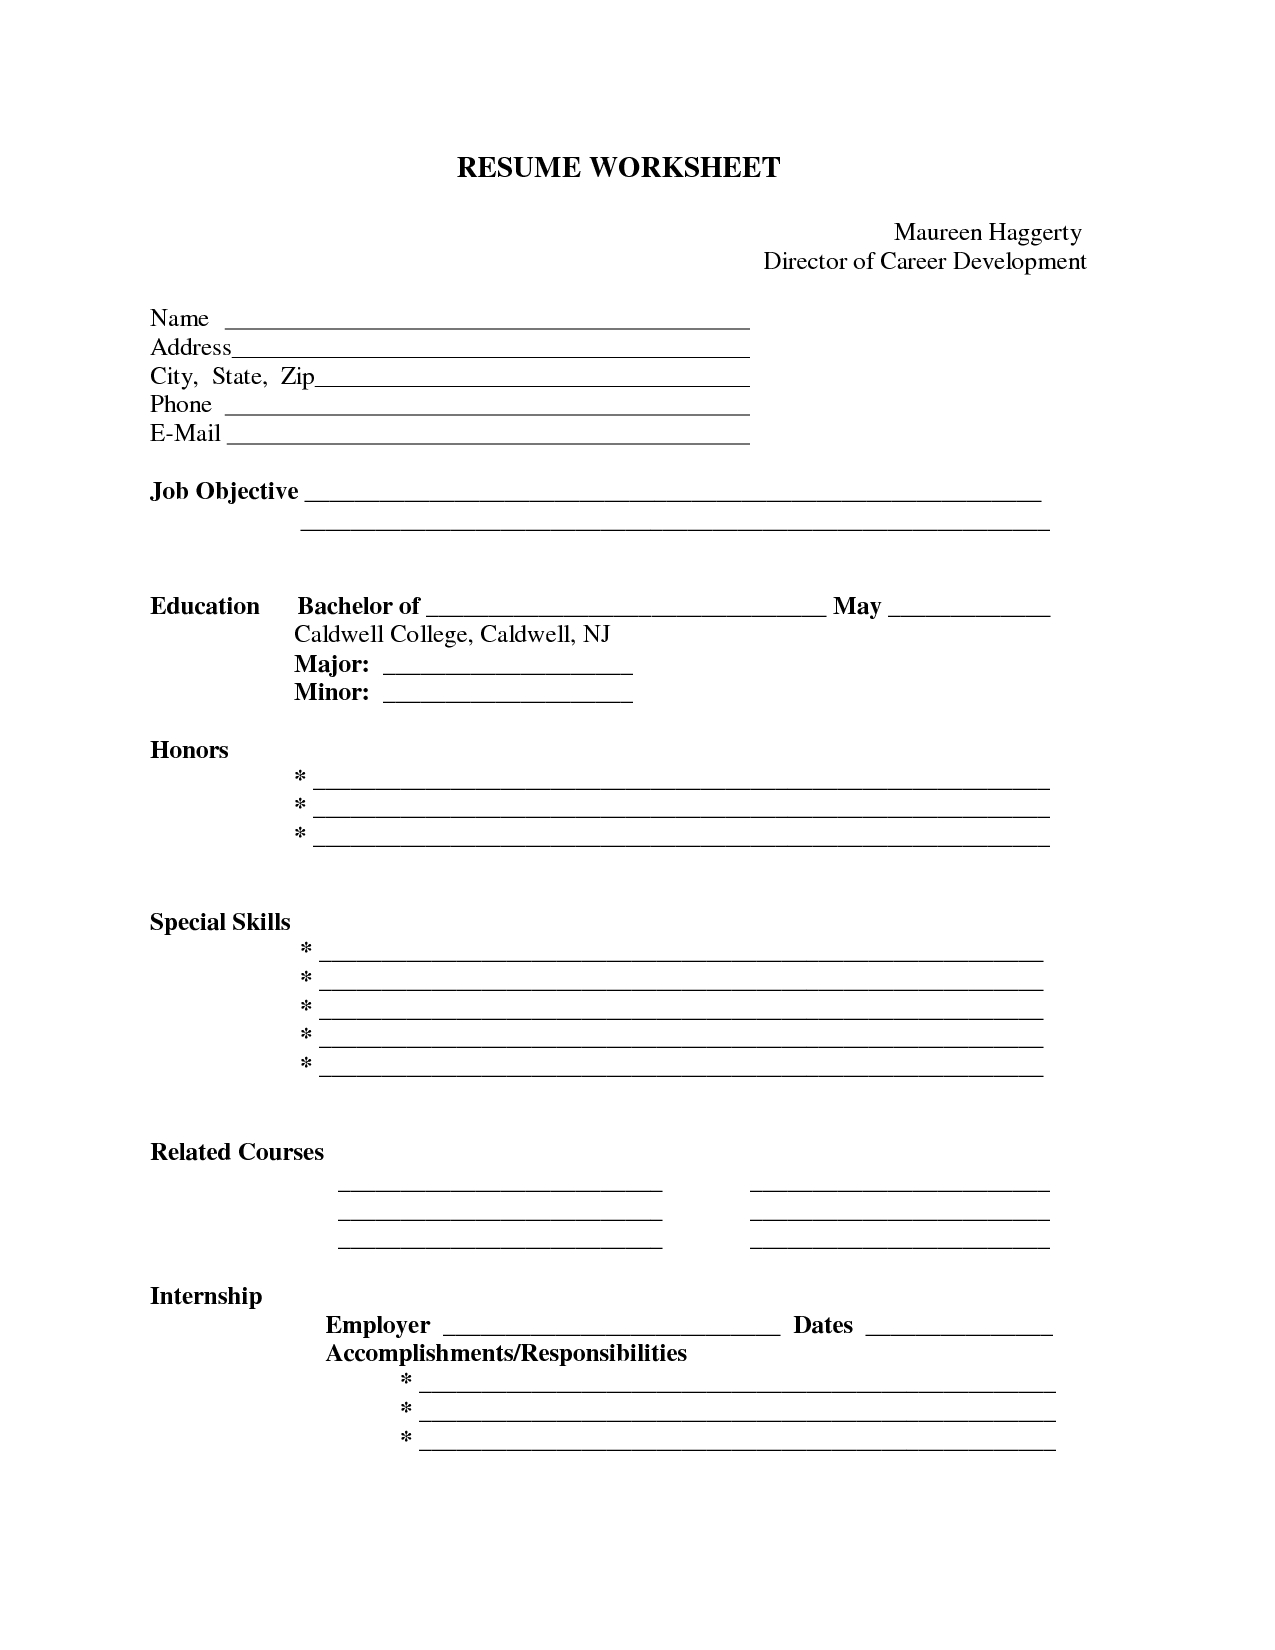 Free Resume Template For Printing Sharetemplates Free Online Google - Free Online Printable Resume Forms